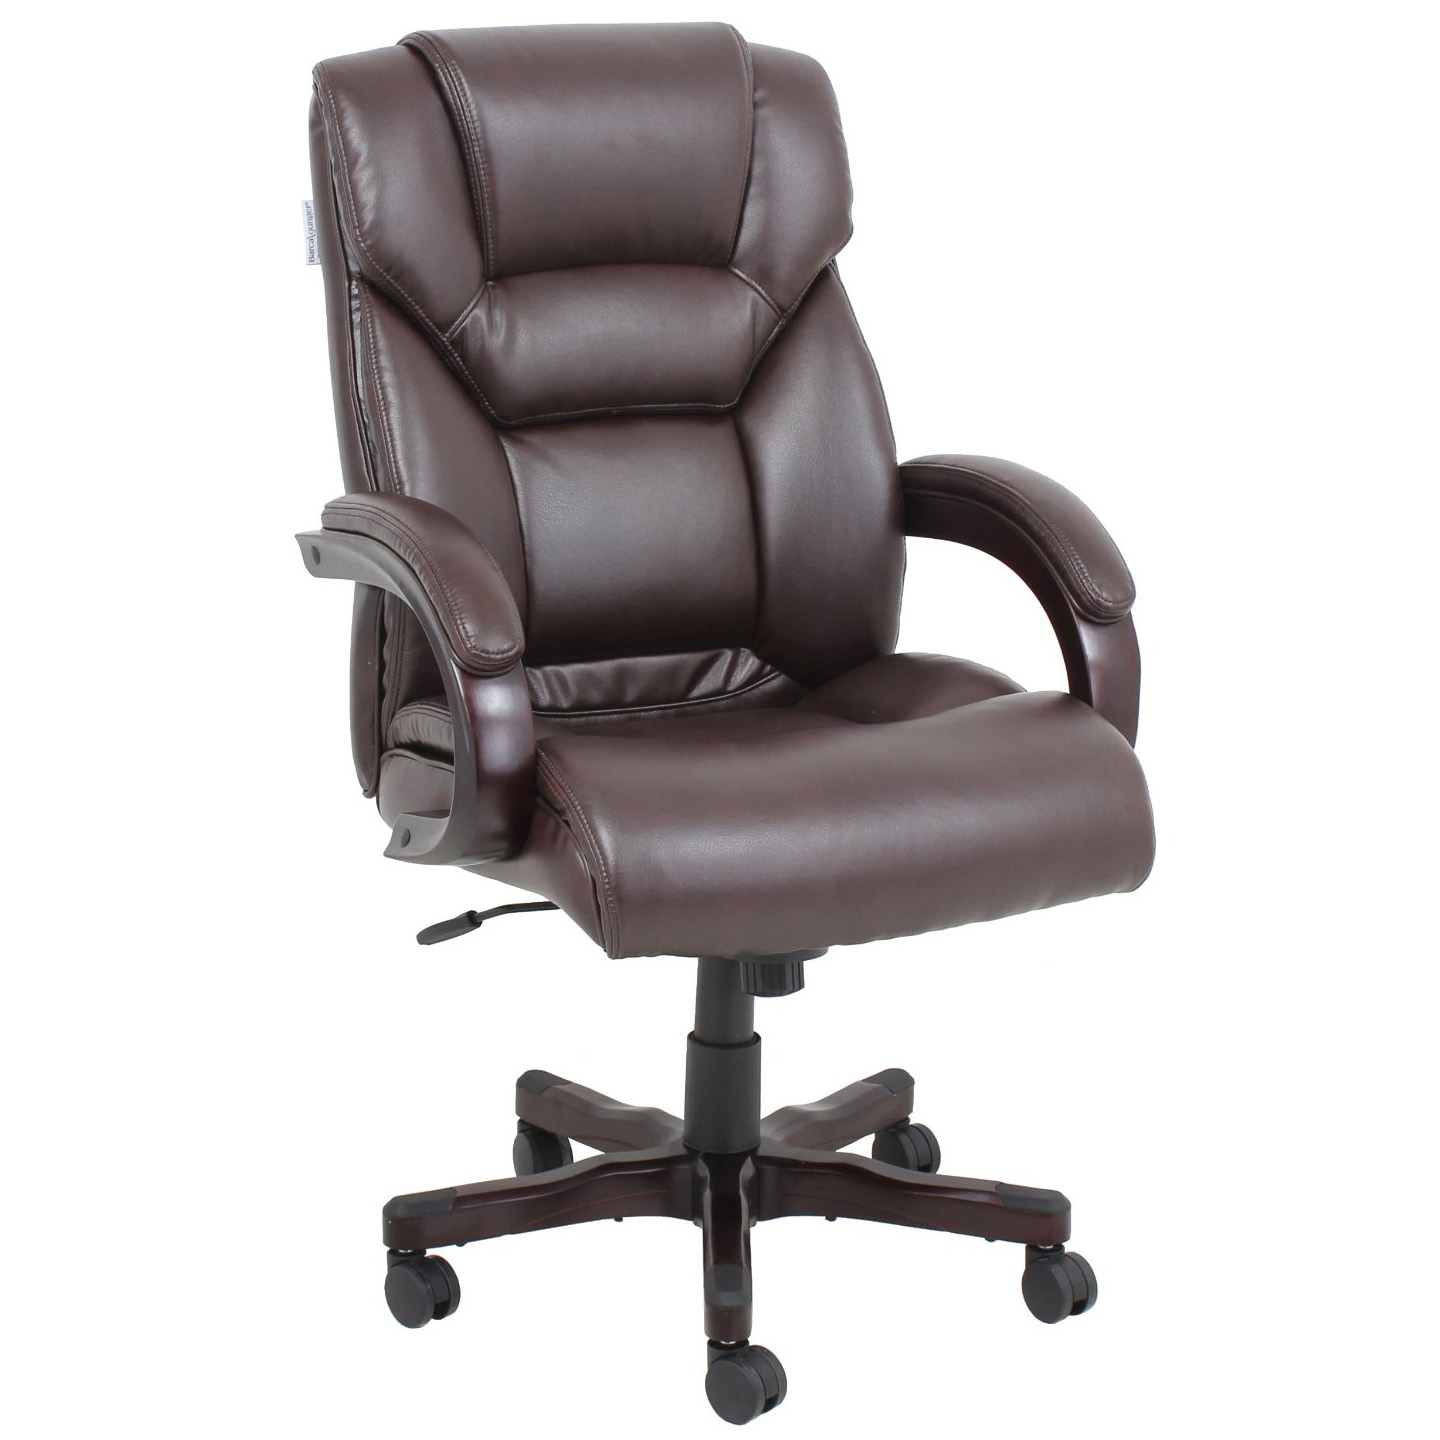 office recliner chairs. Office Recliner Chair. Barcalounger Neptune Ii Home Desk Chair I Chairs H